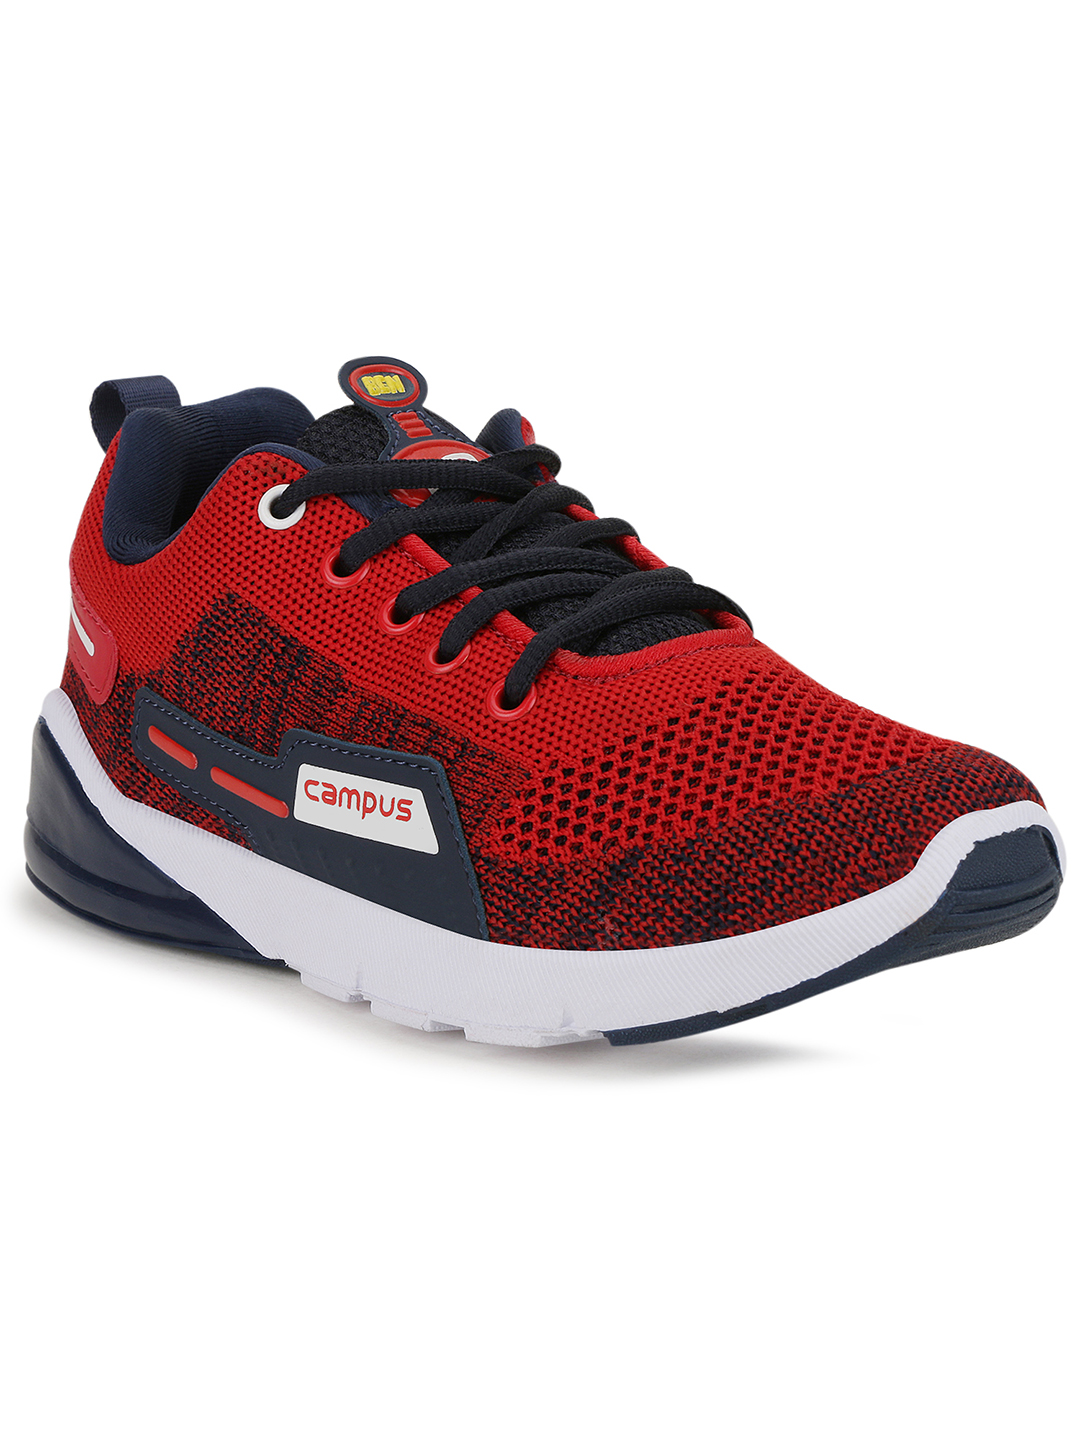 Campus Shoes | Red Running Shoes